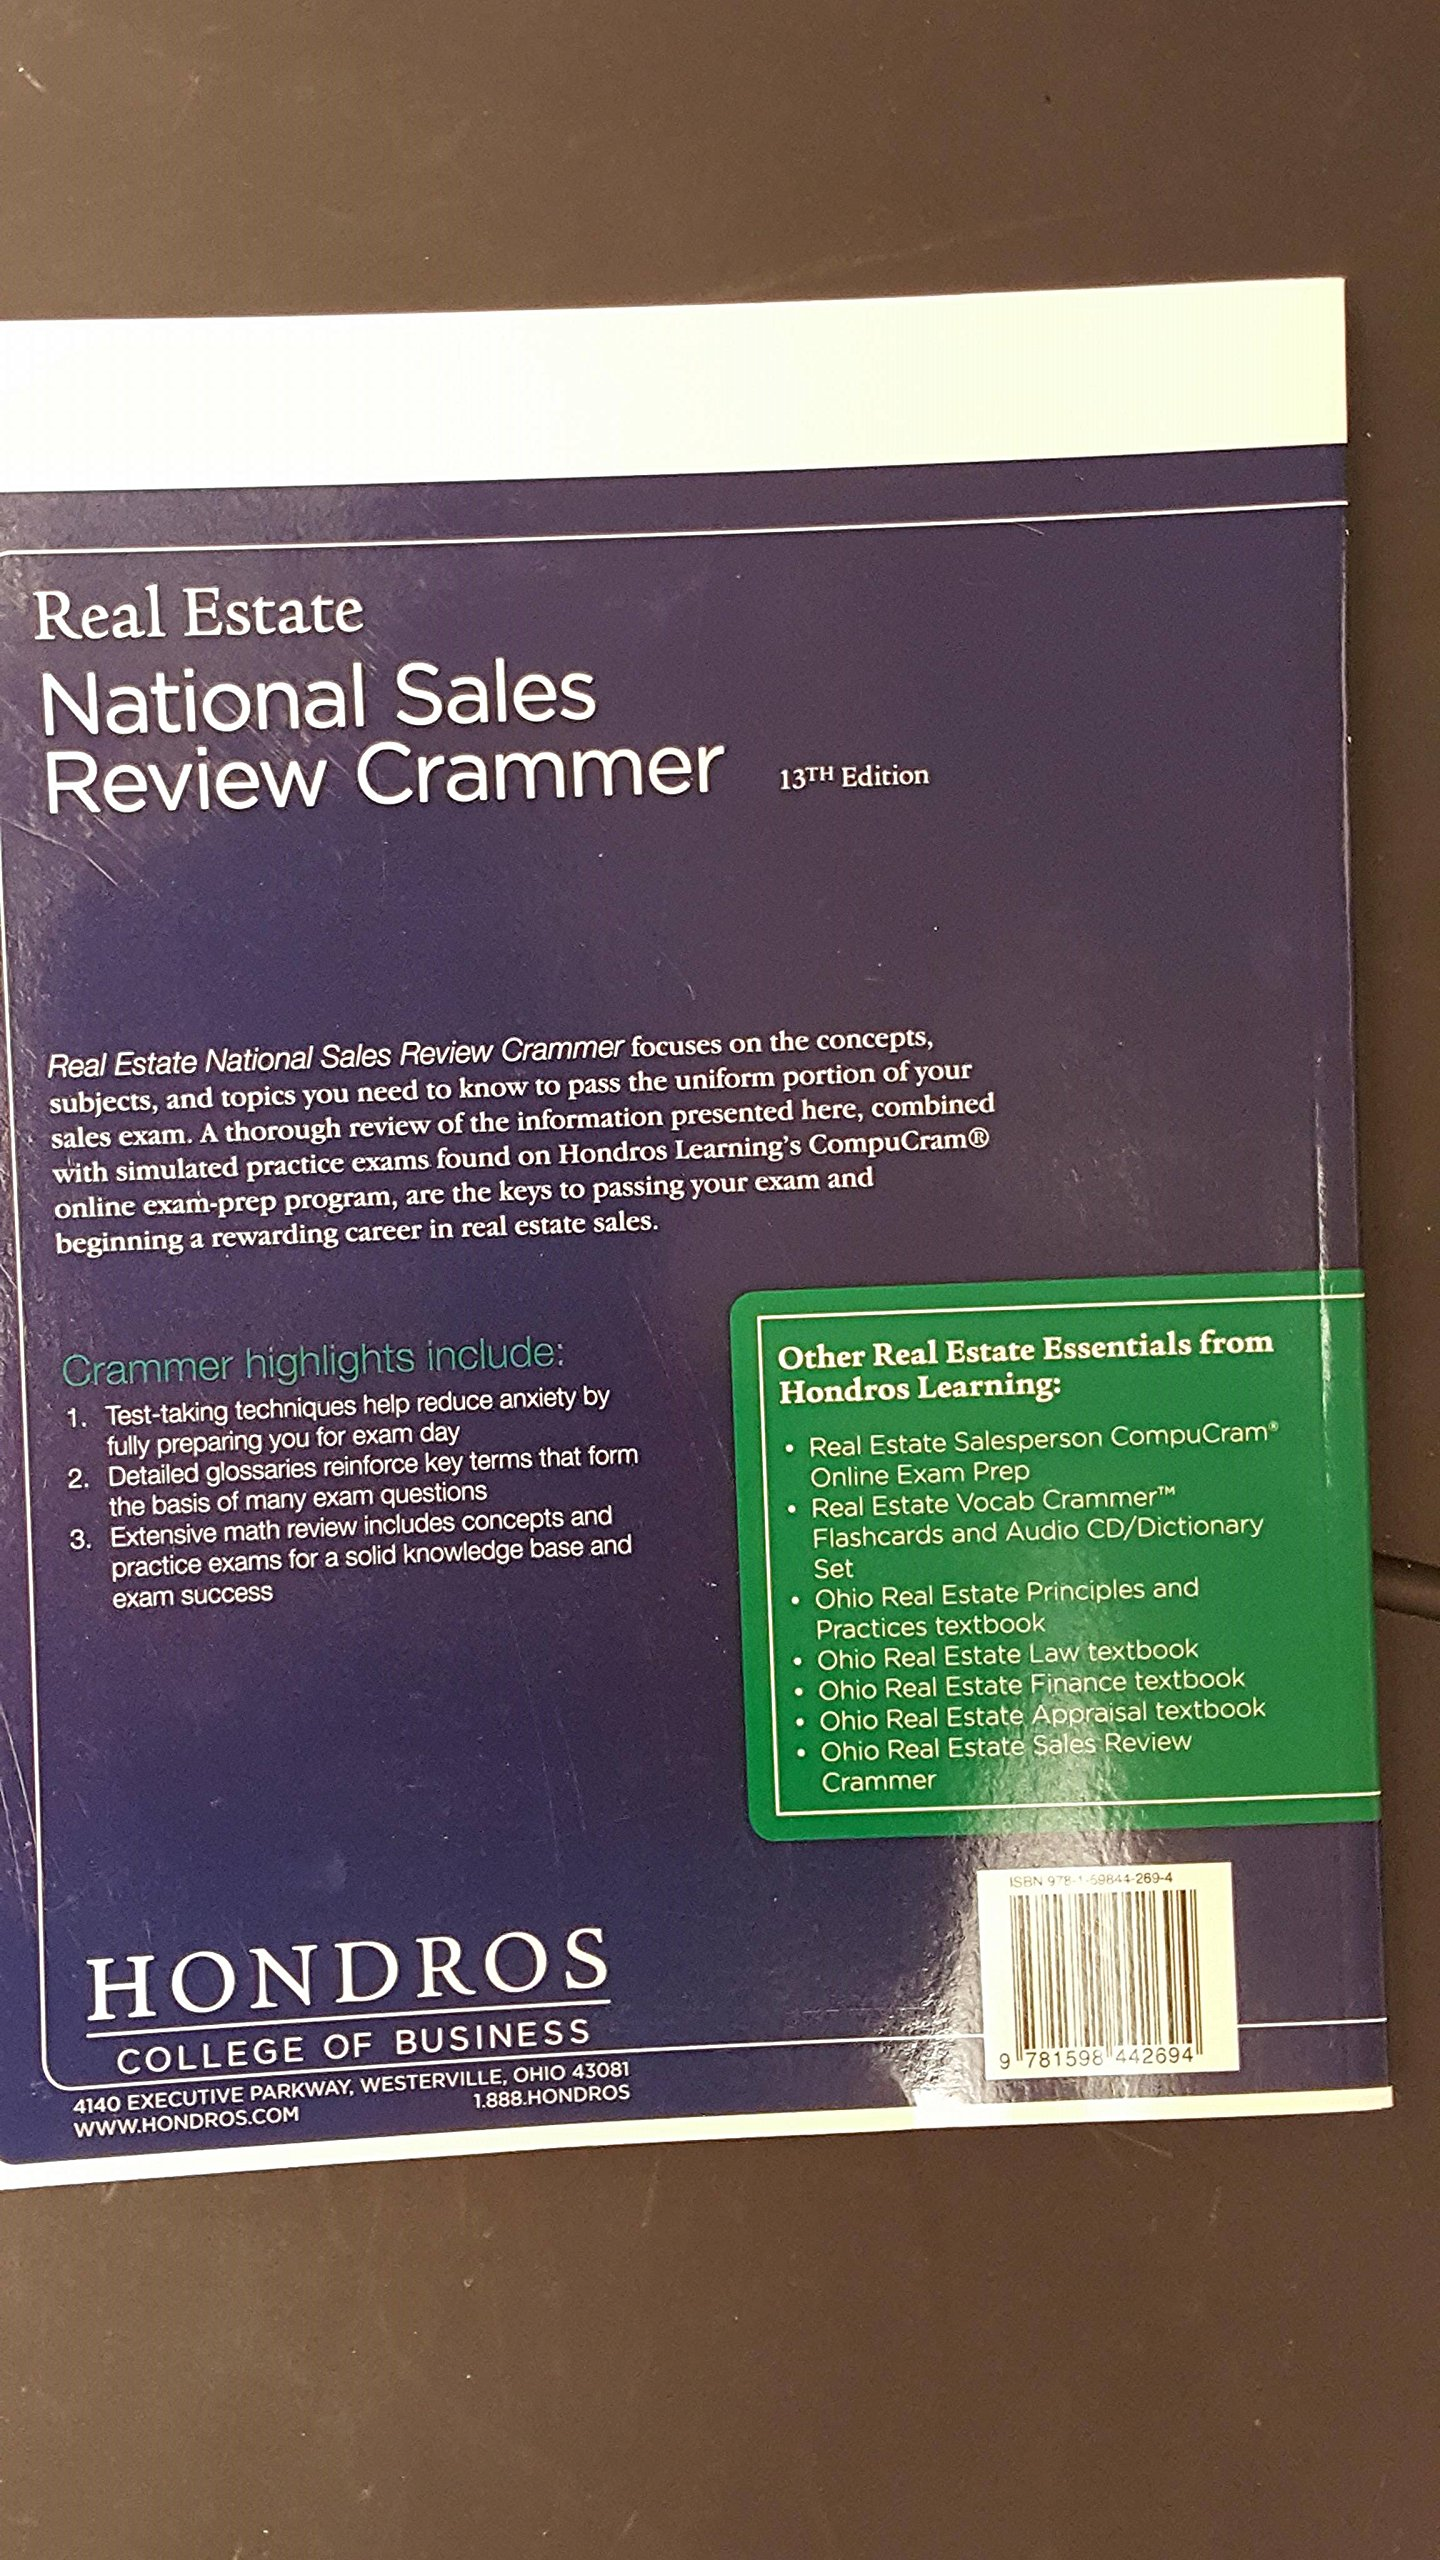 Real Estate National Sales Review Crammer 13th Edition